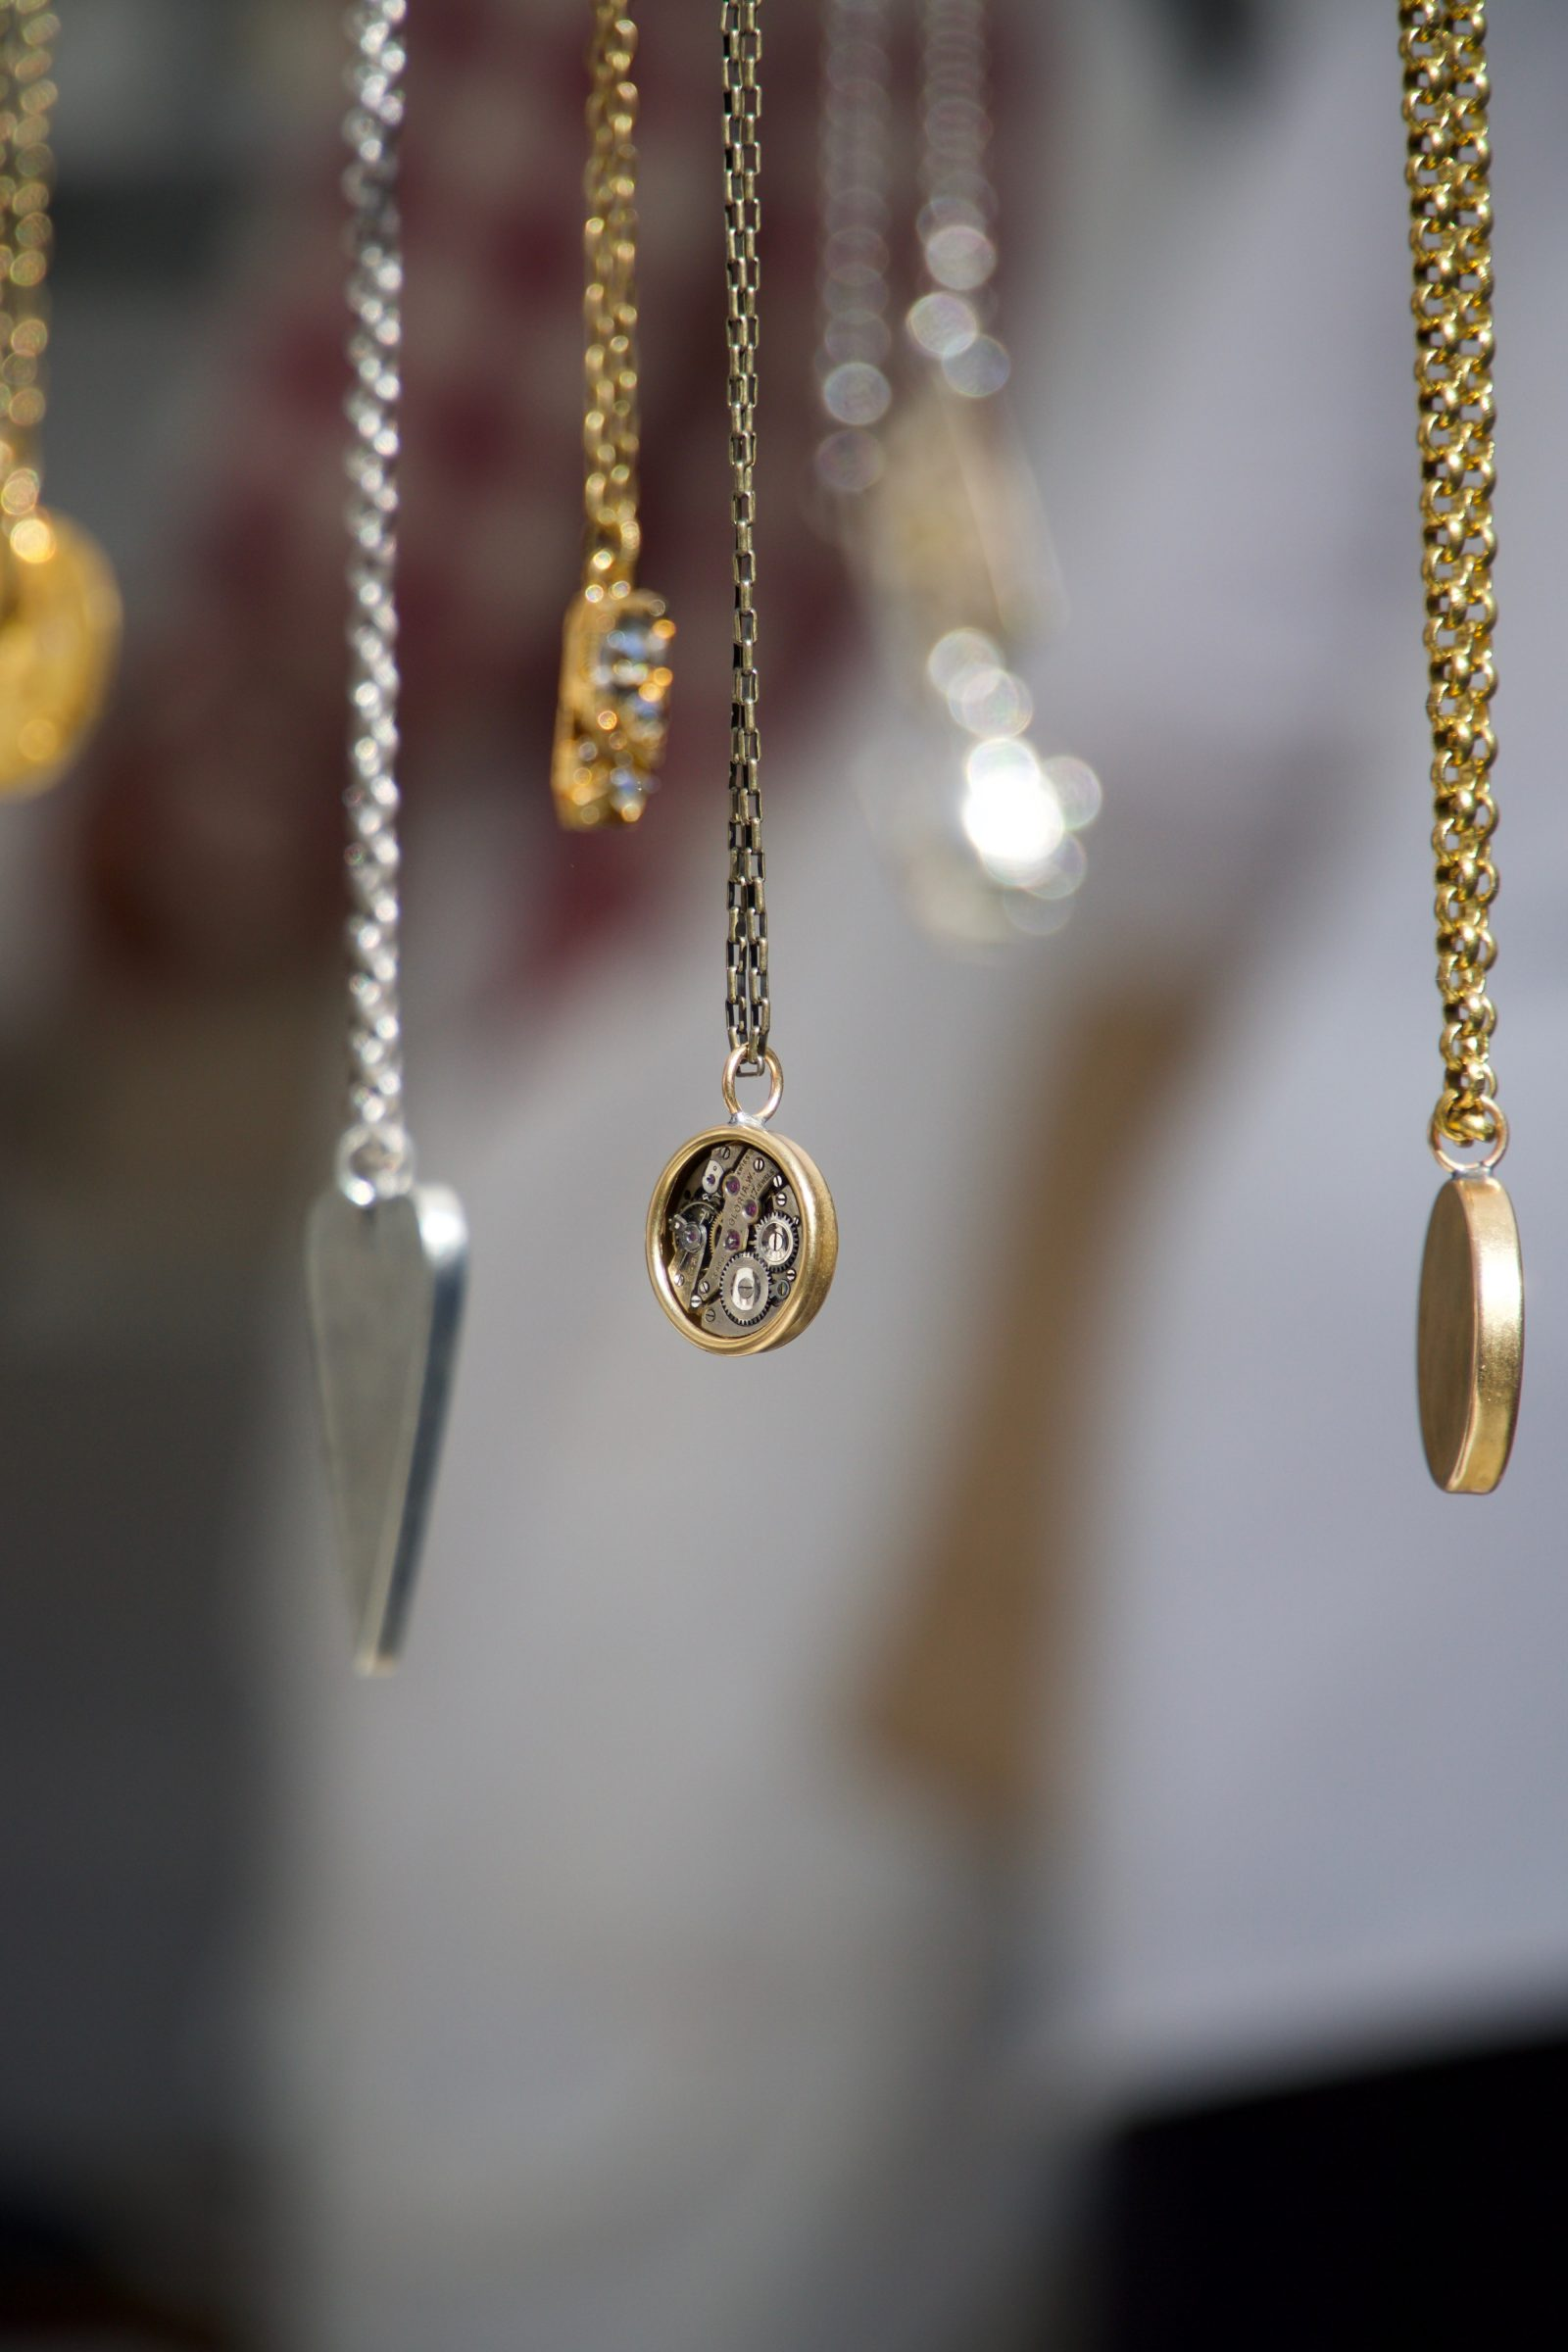 5 Reasons Why You Should Buy Second Hand Jewellery